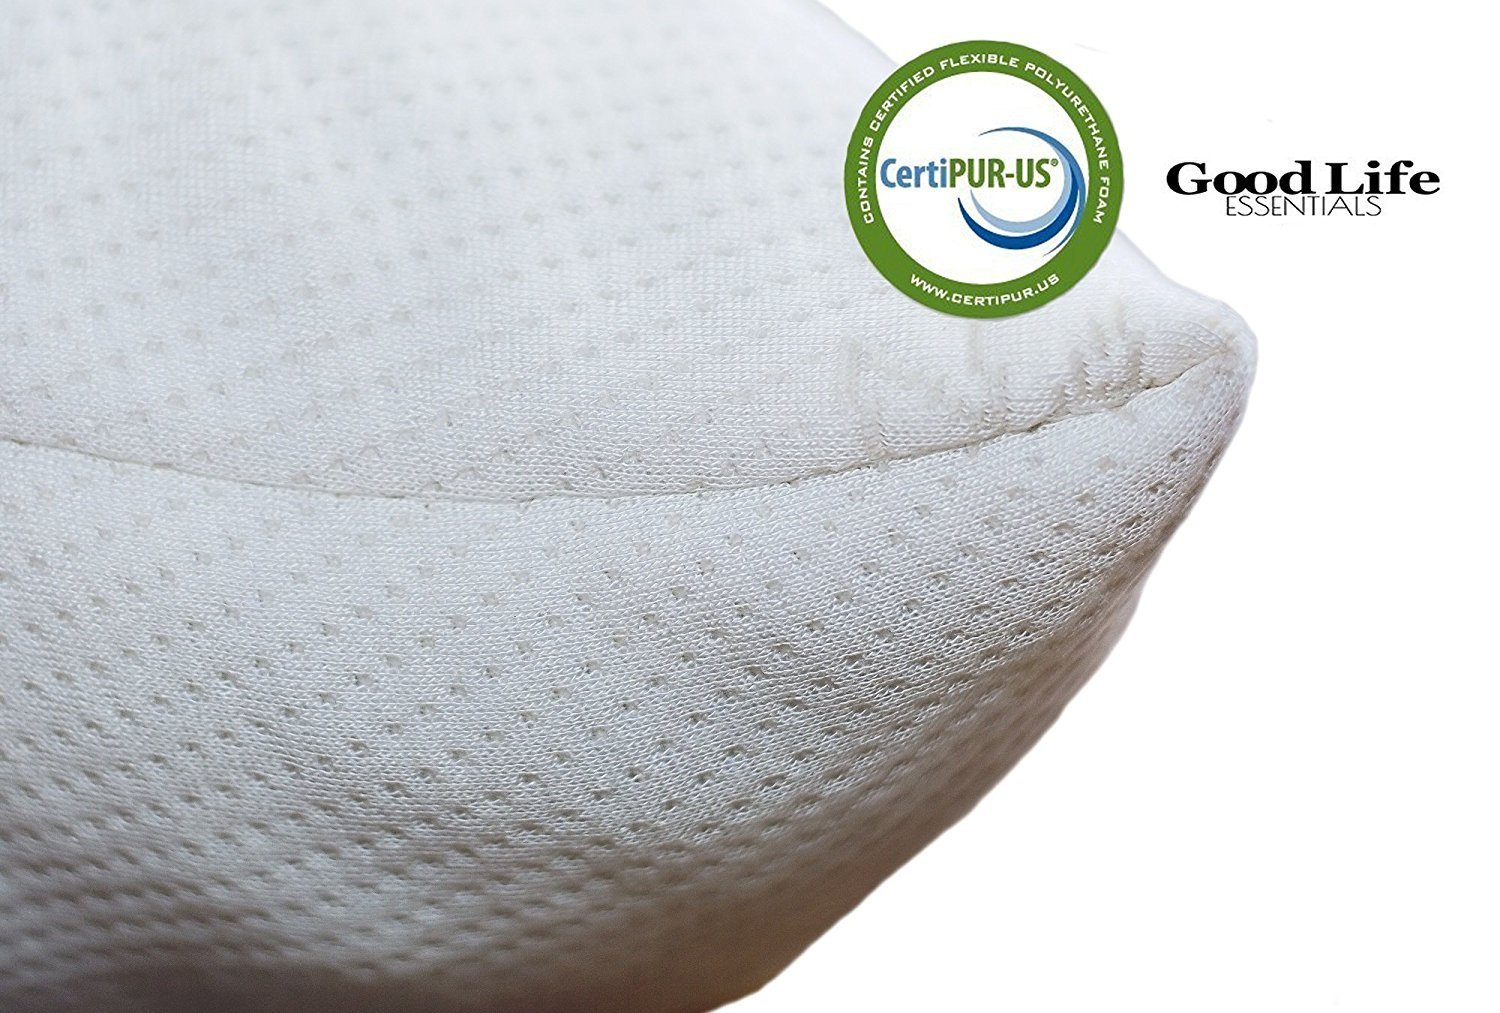 Good Life Essentials Shredded Memory Foam Hypoallergenic Pillow with Stay Cool Bamboo Cover